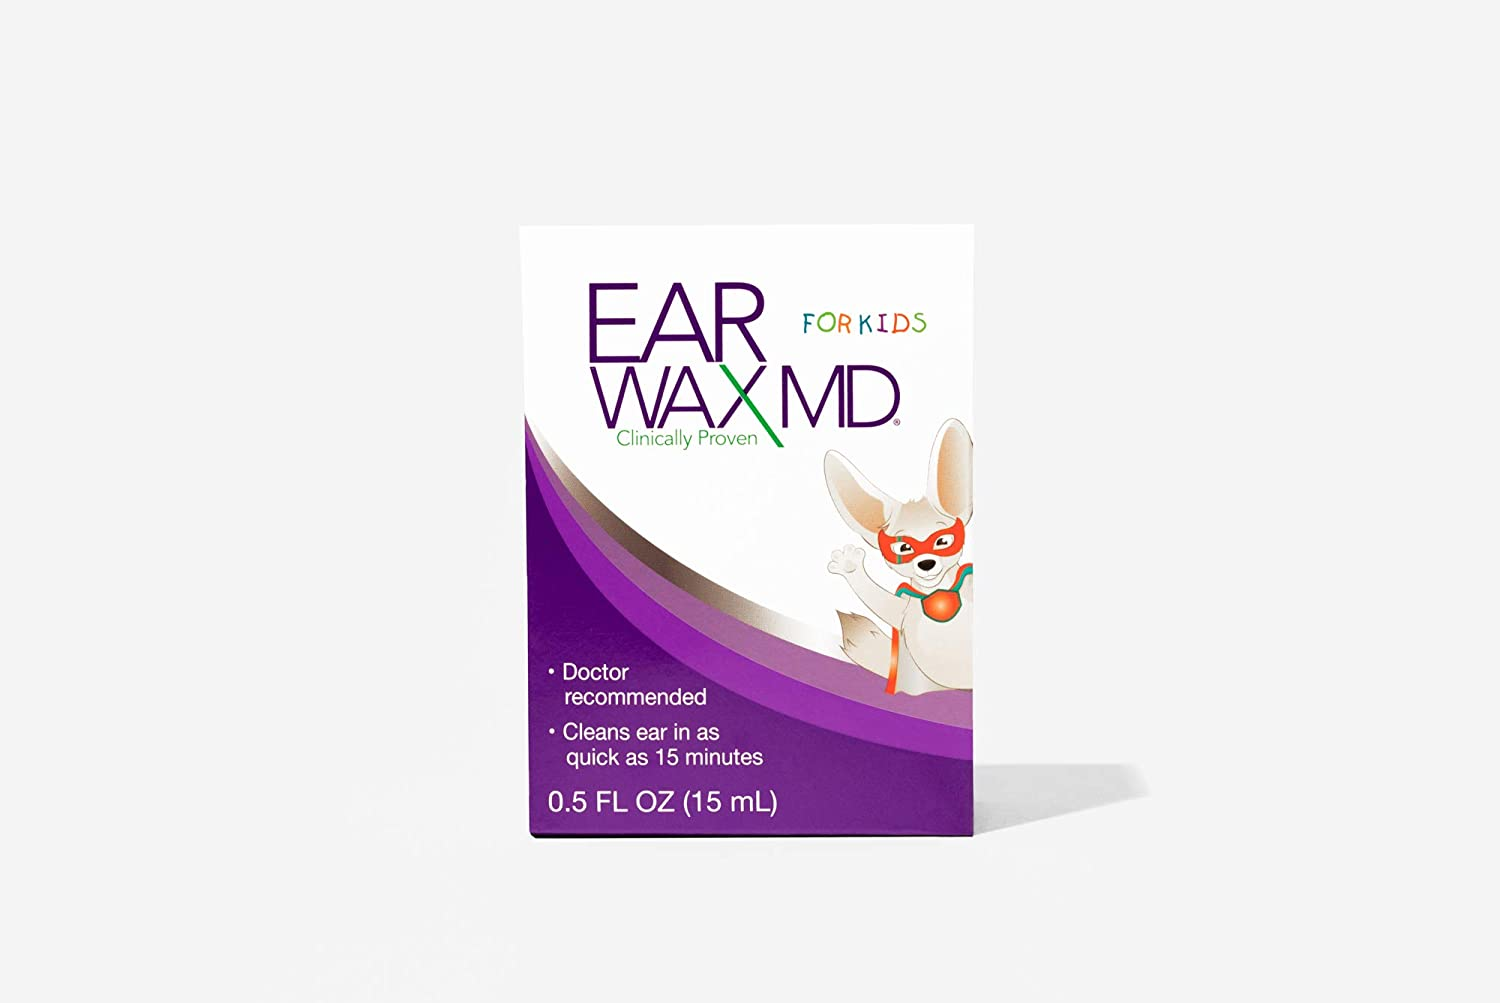 EARWAX MD for Kids Ear Wax Cleaning Animer and price revision I Removal Kit Animer and price revision Tool